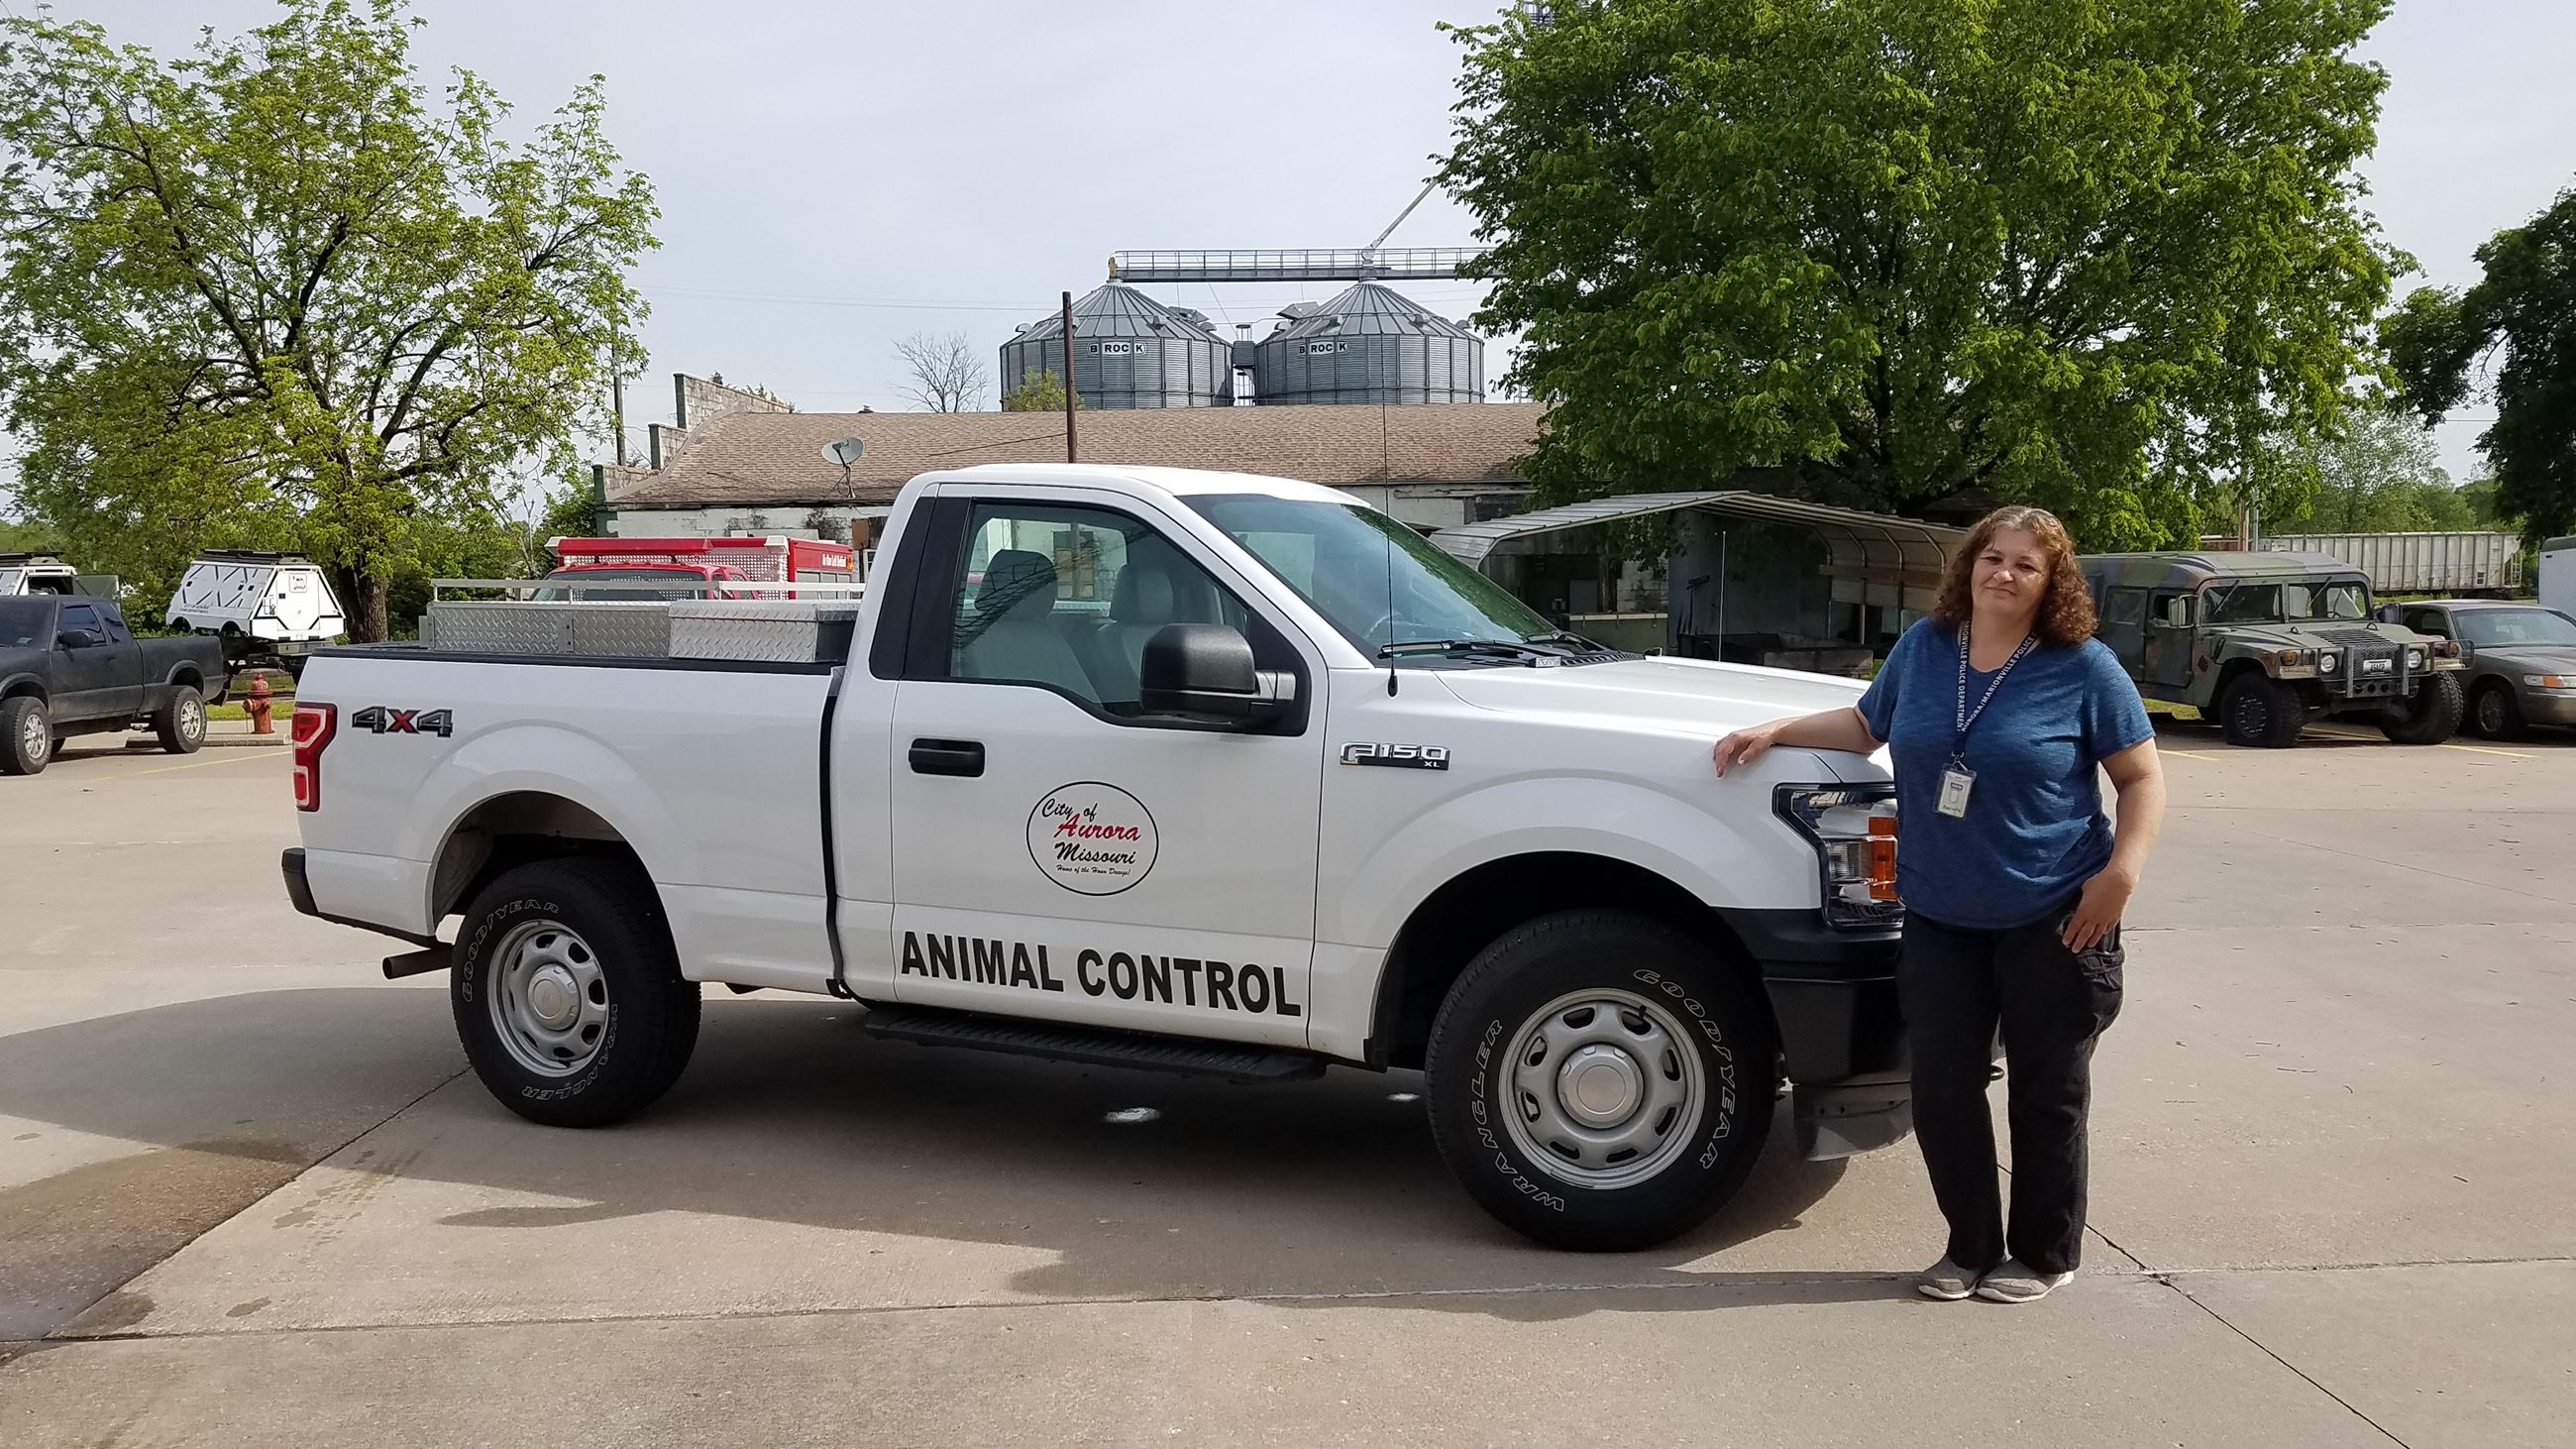 animal control officer standing in front of white pickup in parking lot